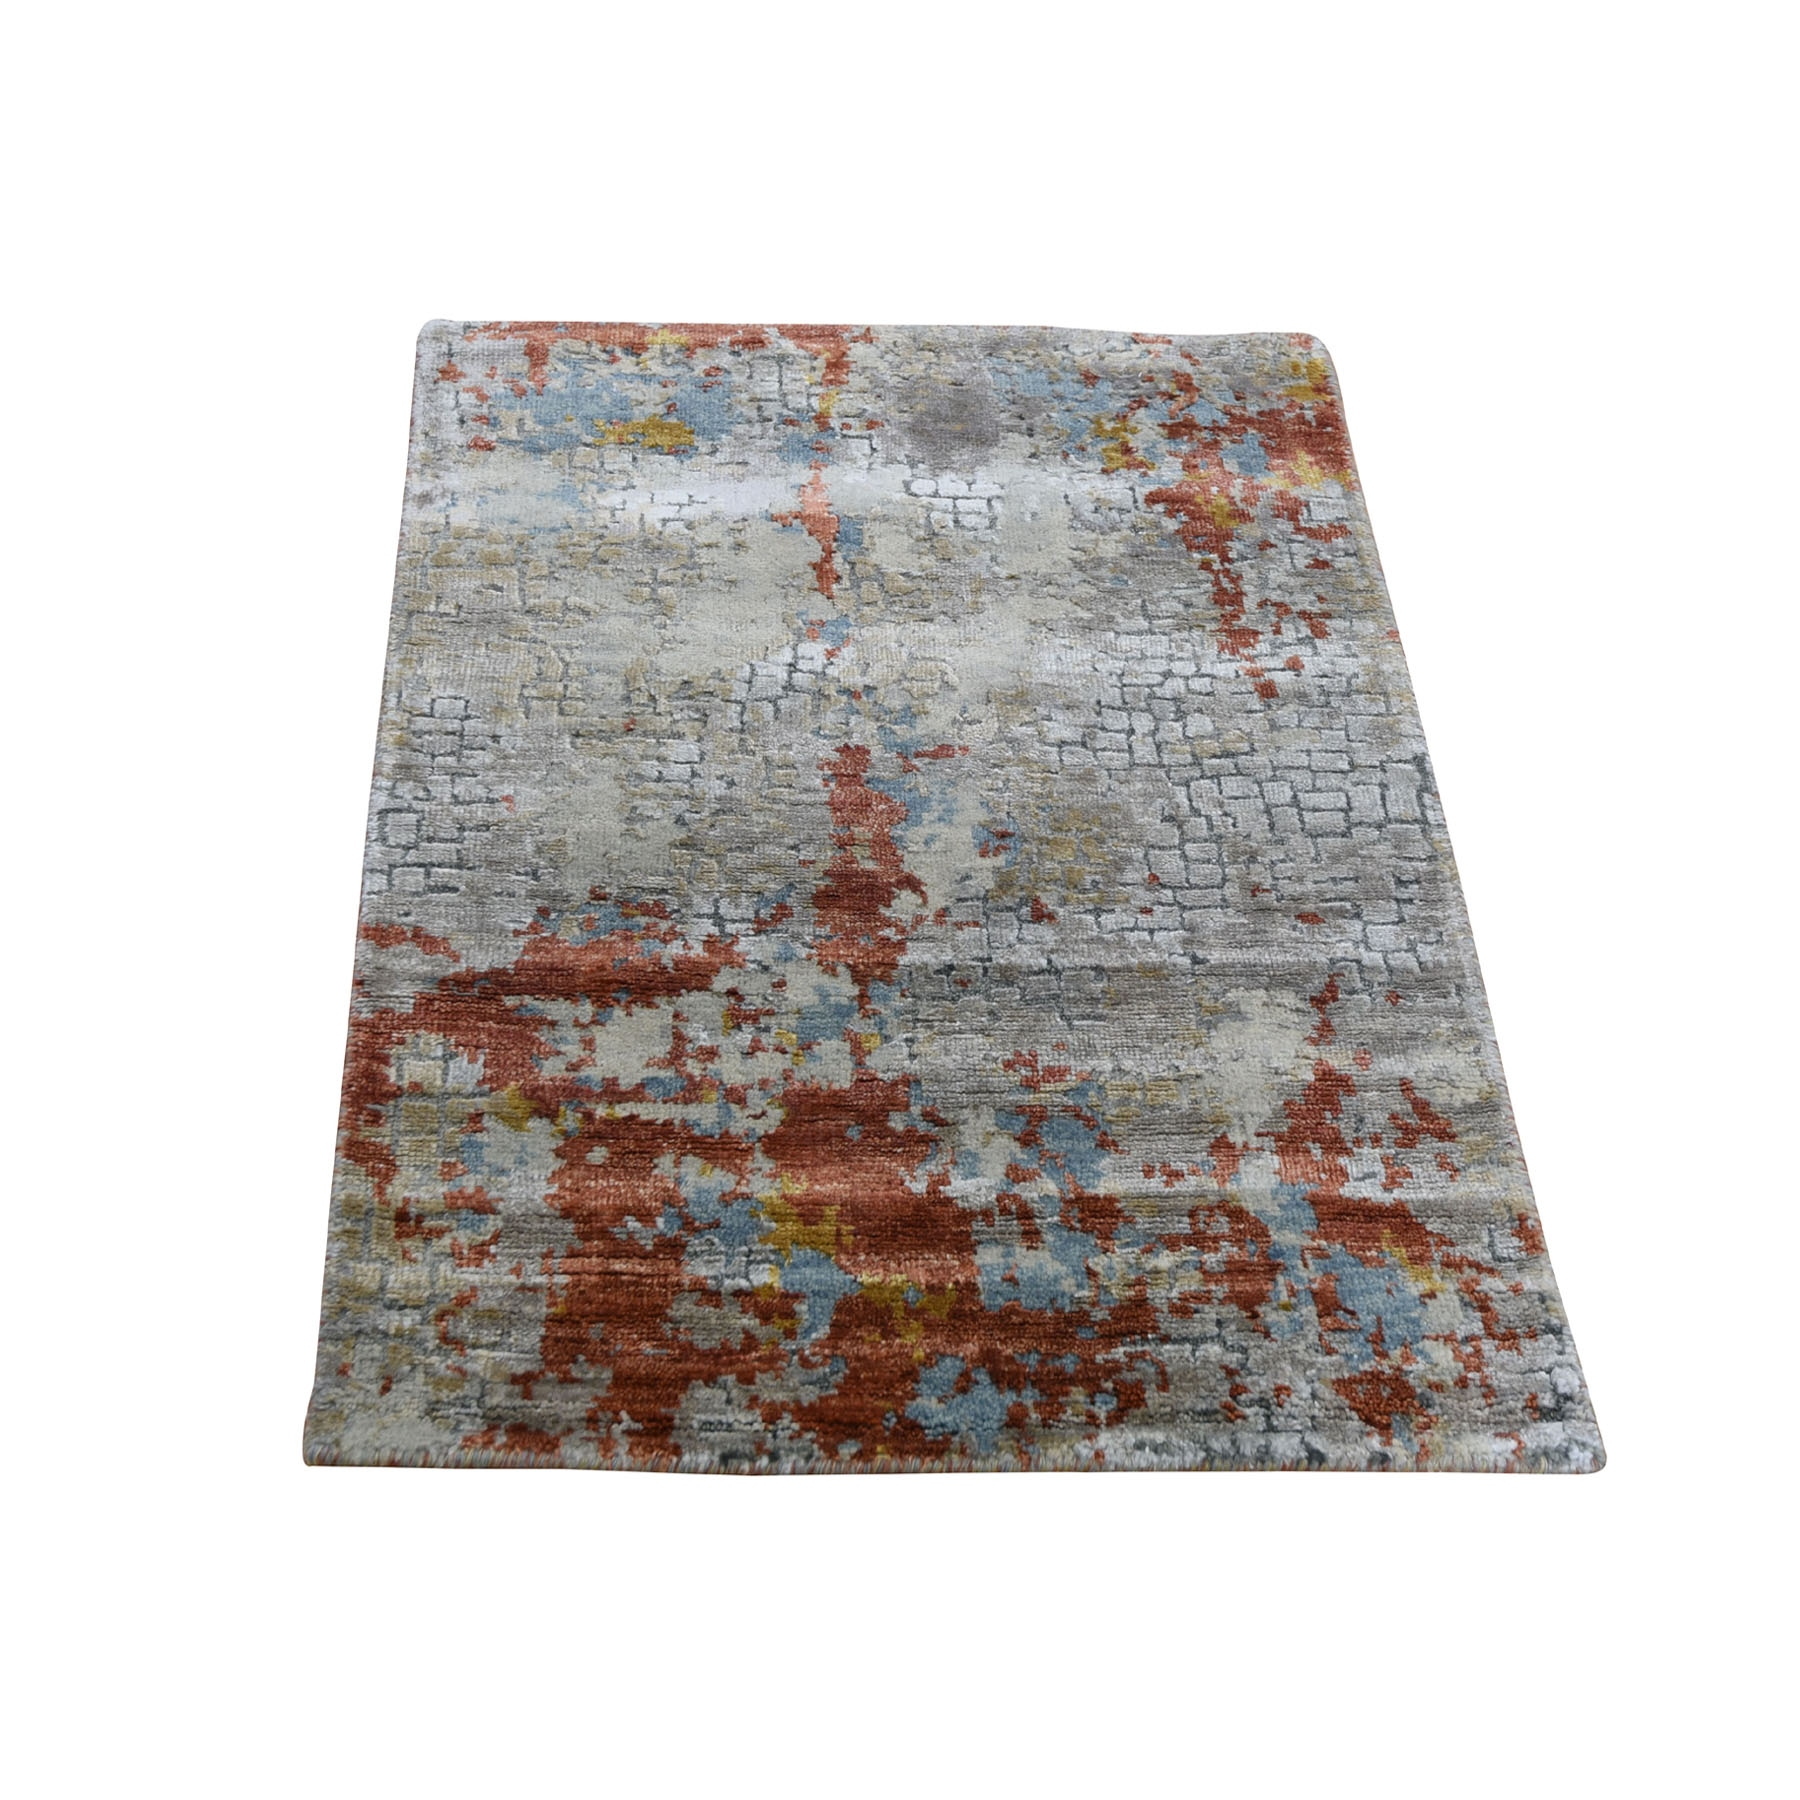 2'X3' Wool And Silk Abstract With Fire Mosaic Design Hand-Knotted Oriental Rug moad8c07